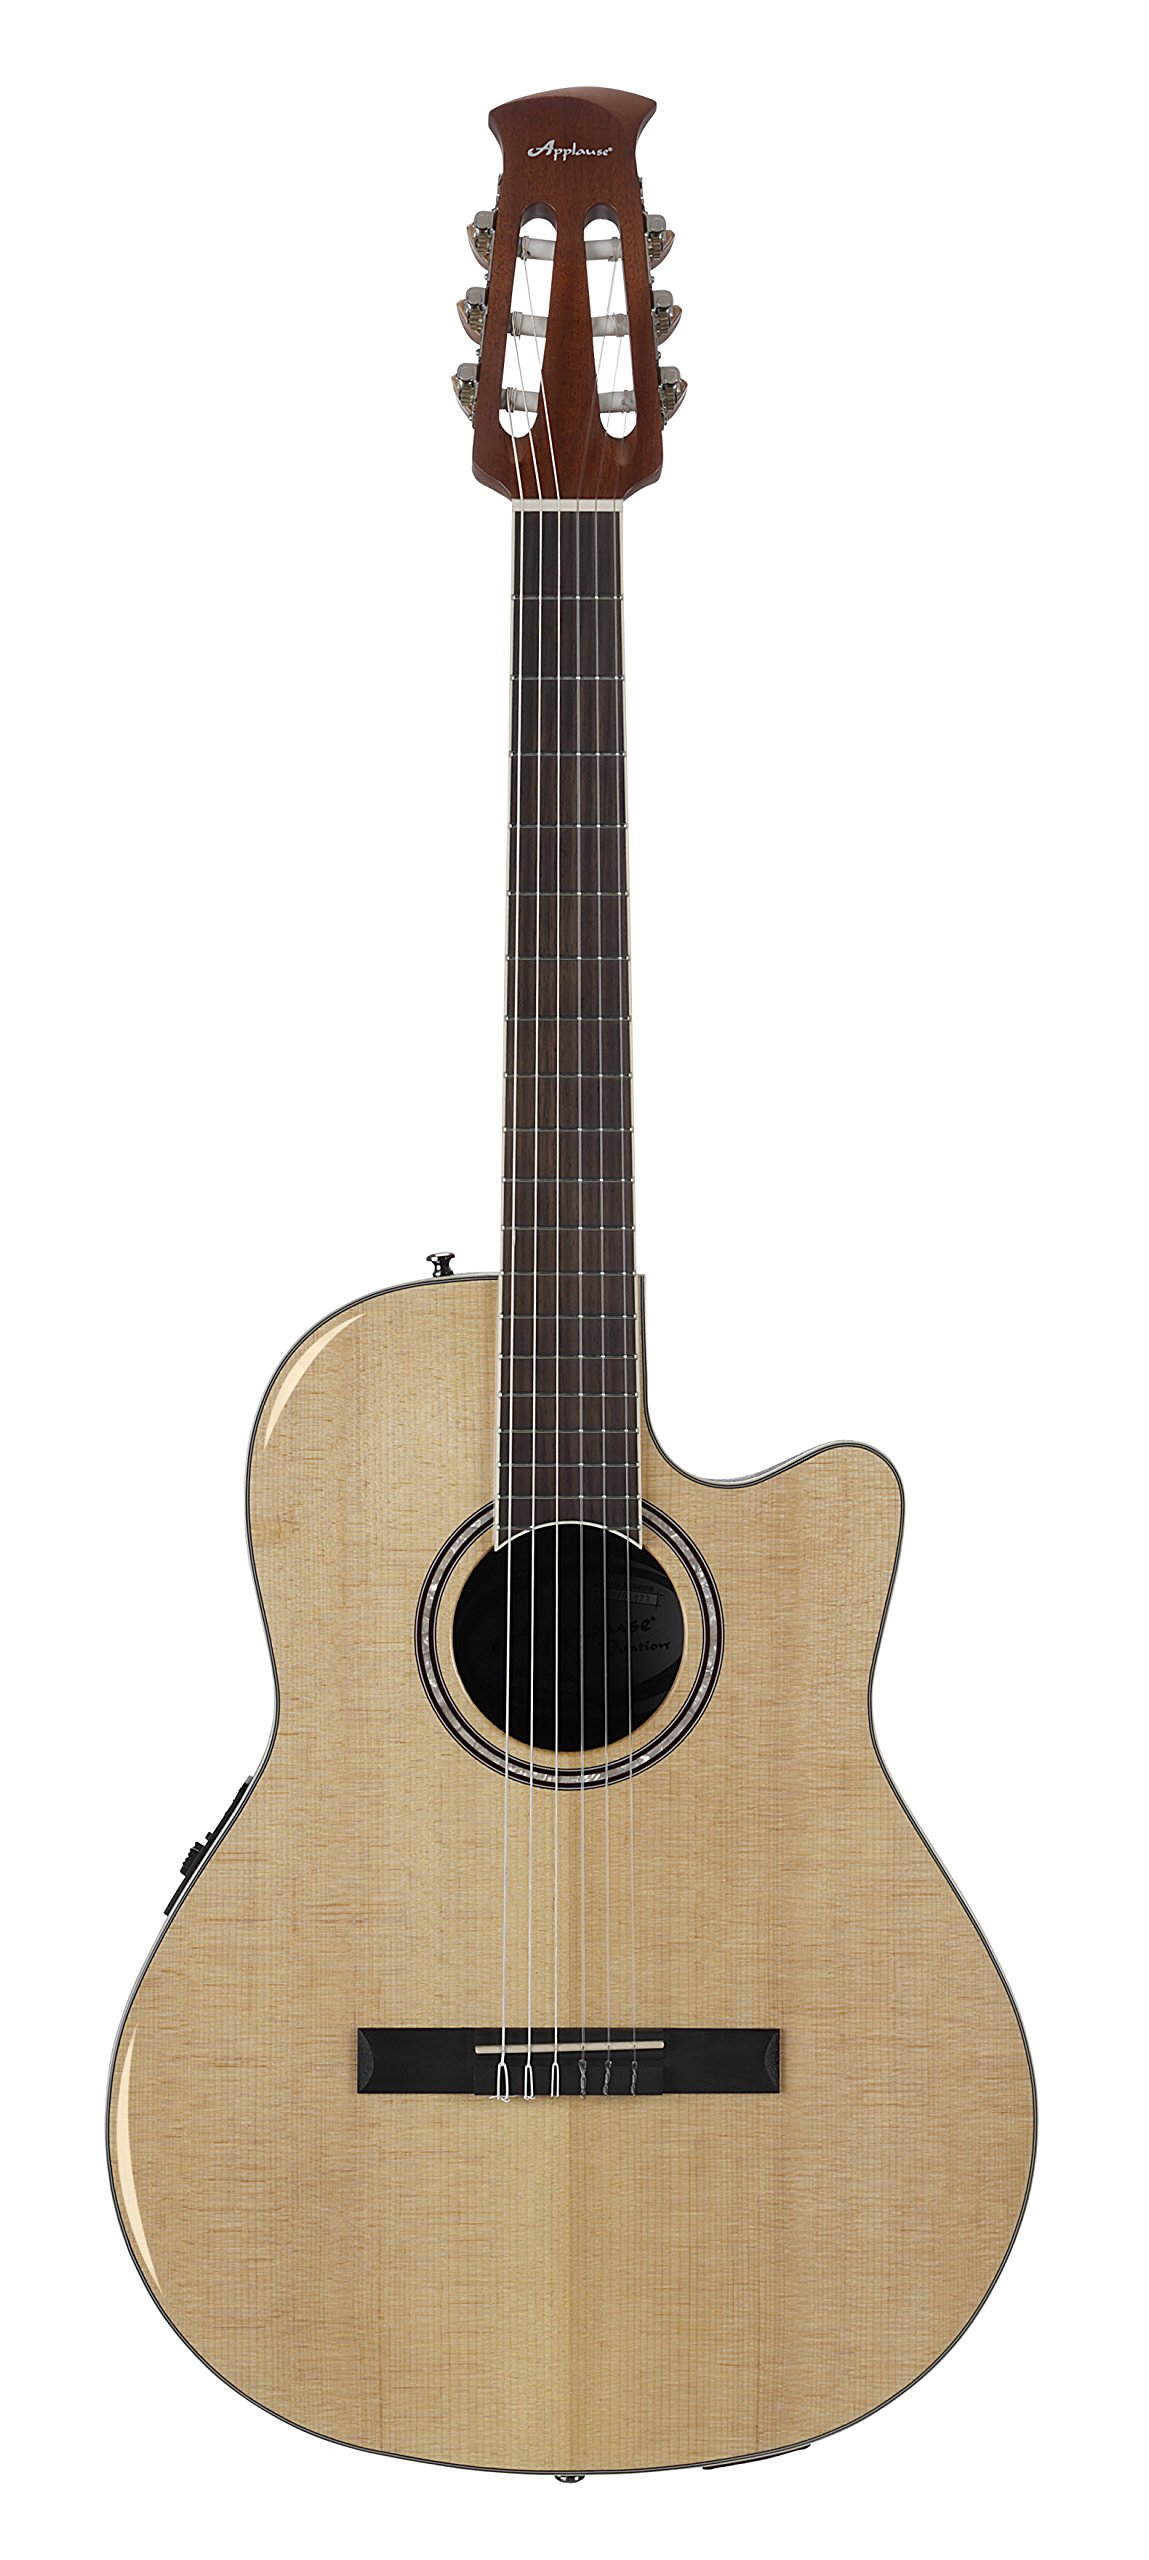 Ovation Guitar Applause Balladeer Plus Spruce Top Acoustic Electric Nylon String by Ovation